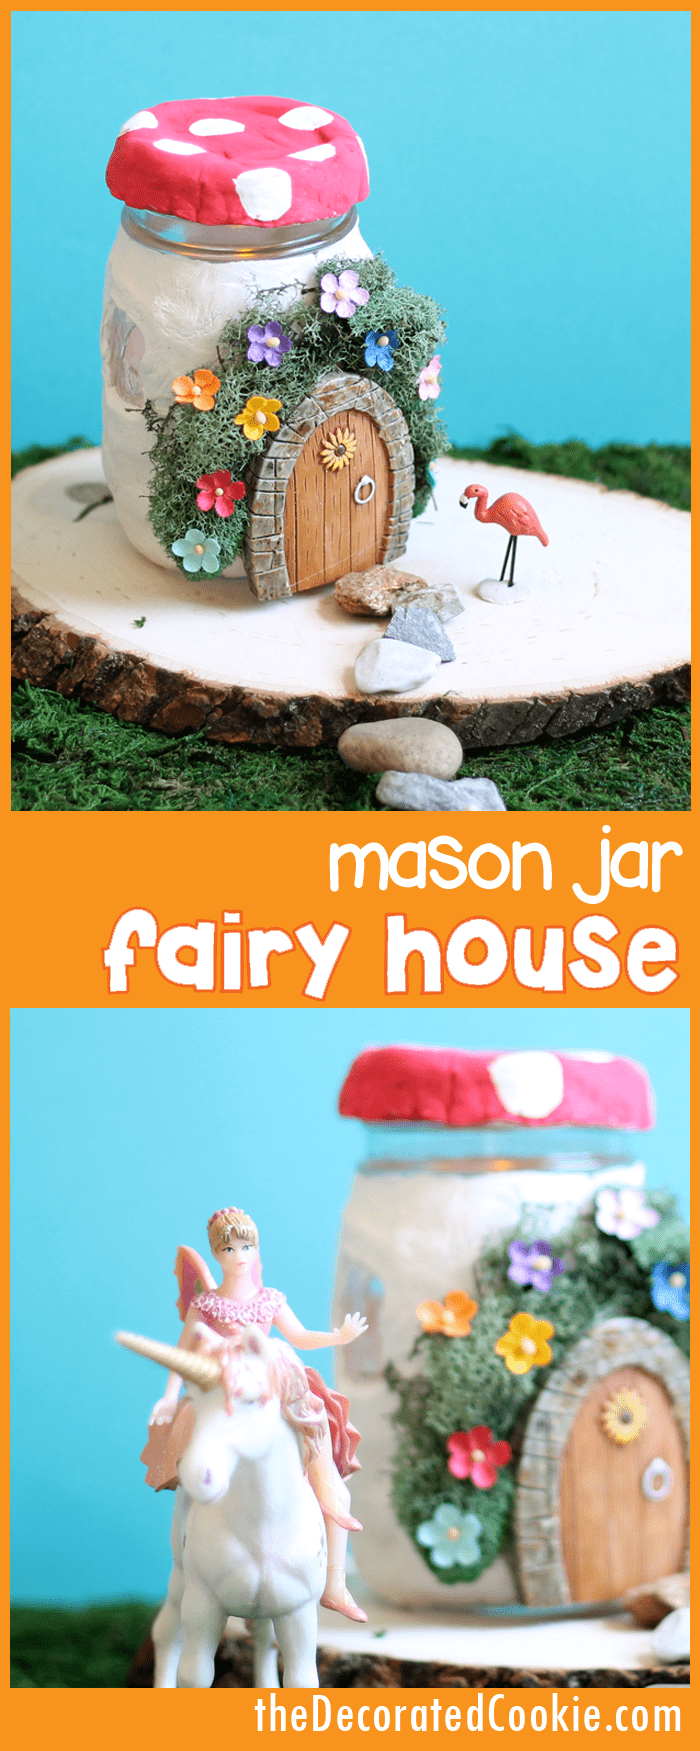 mason jar fairy house -- easy fairy garden craft for kids or adults -- with tea-lights inside